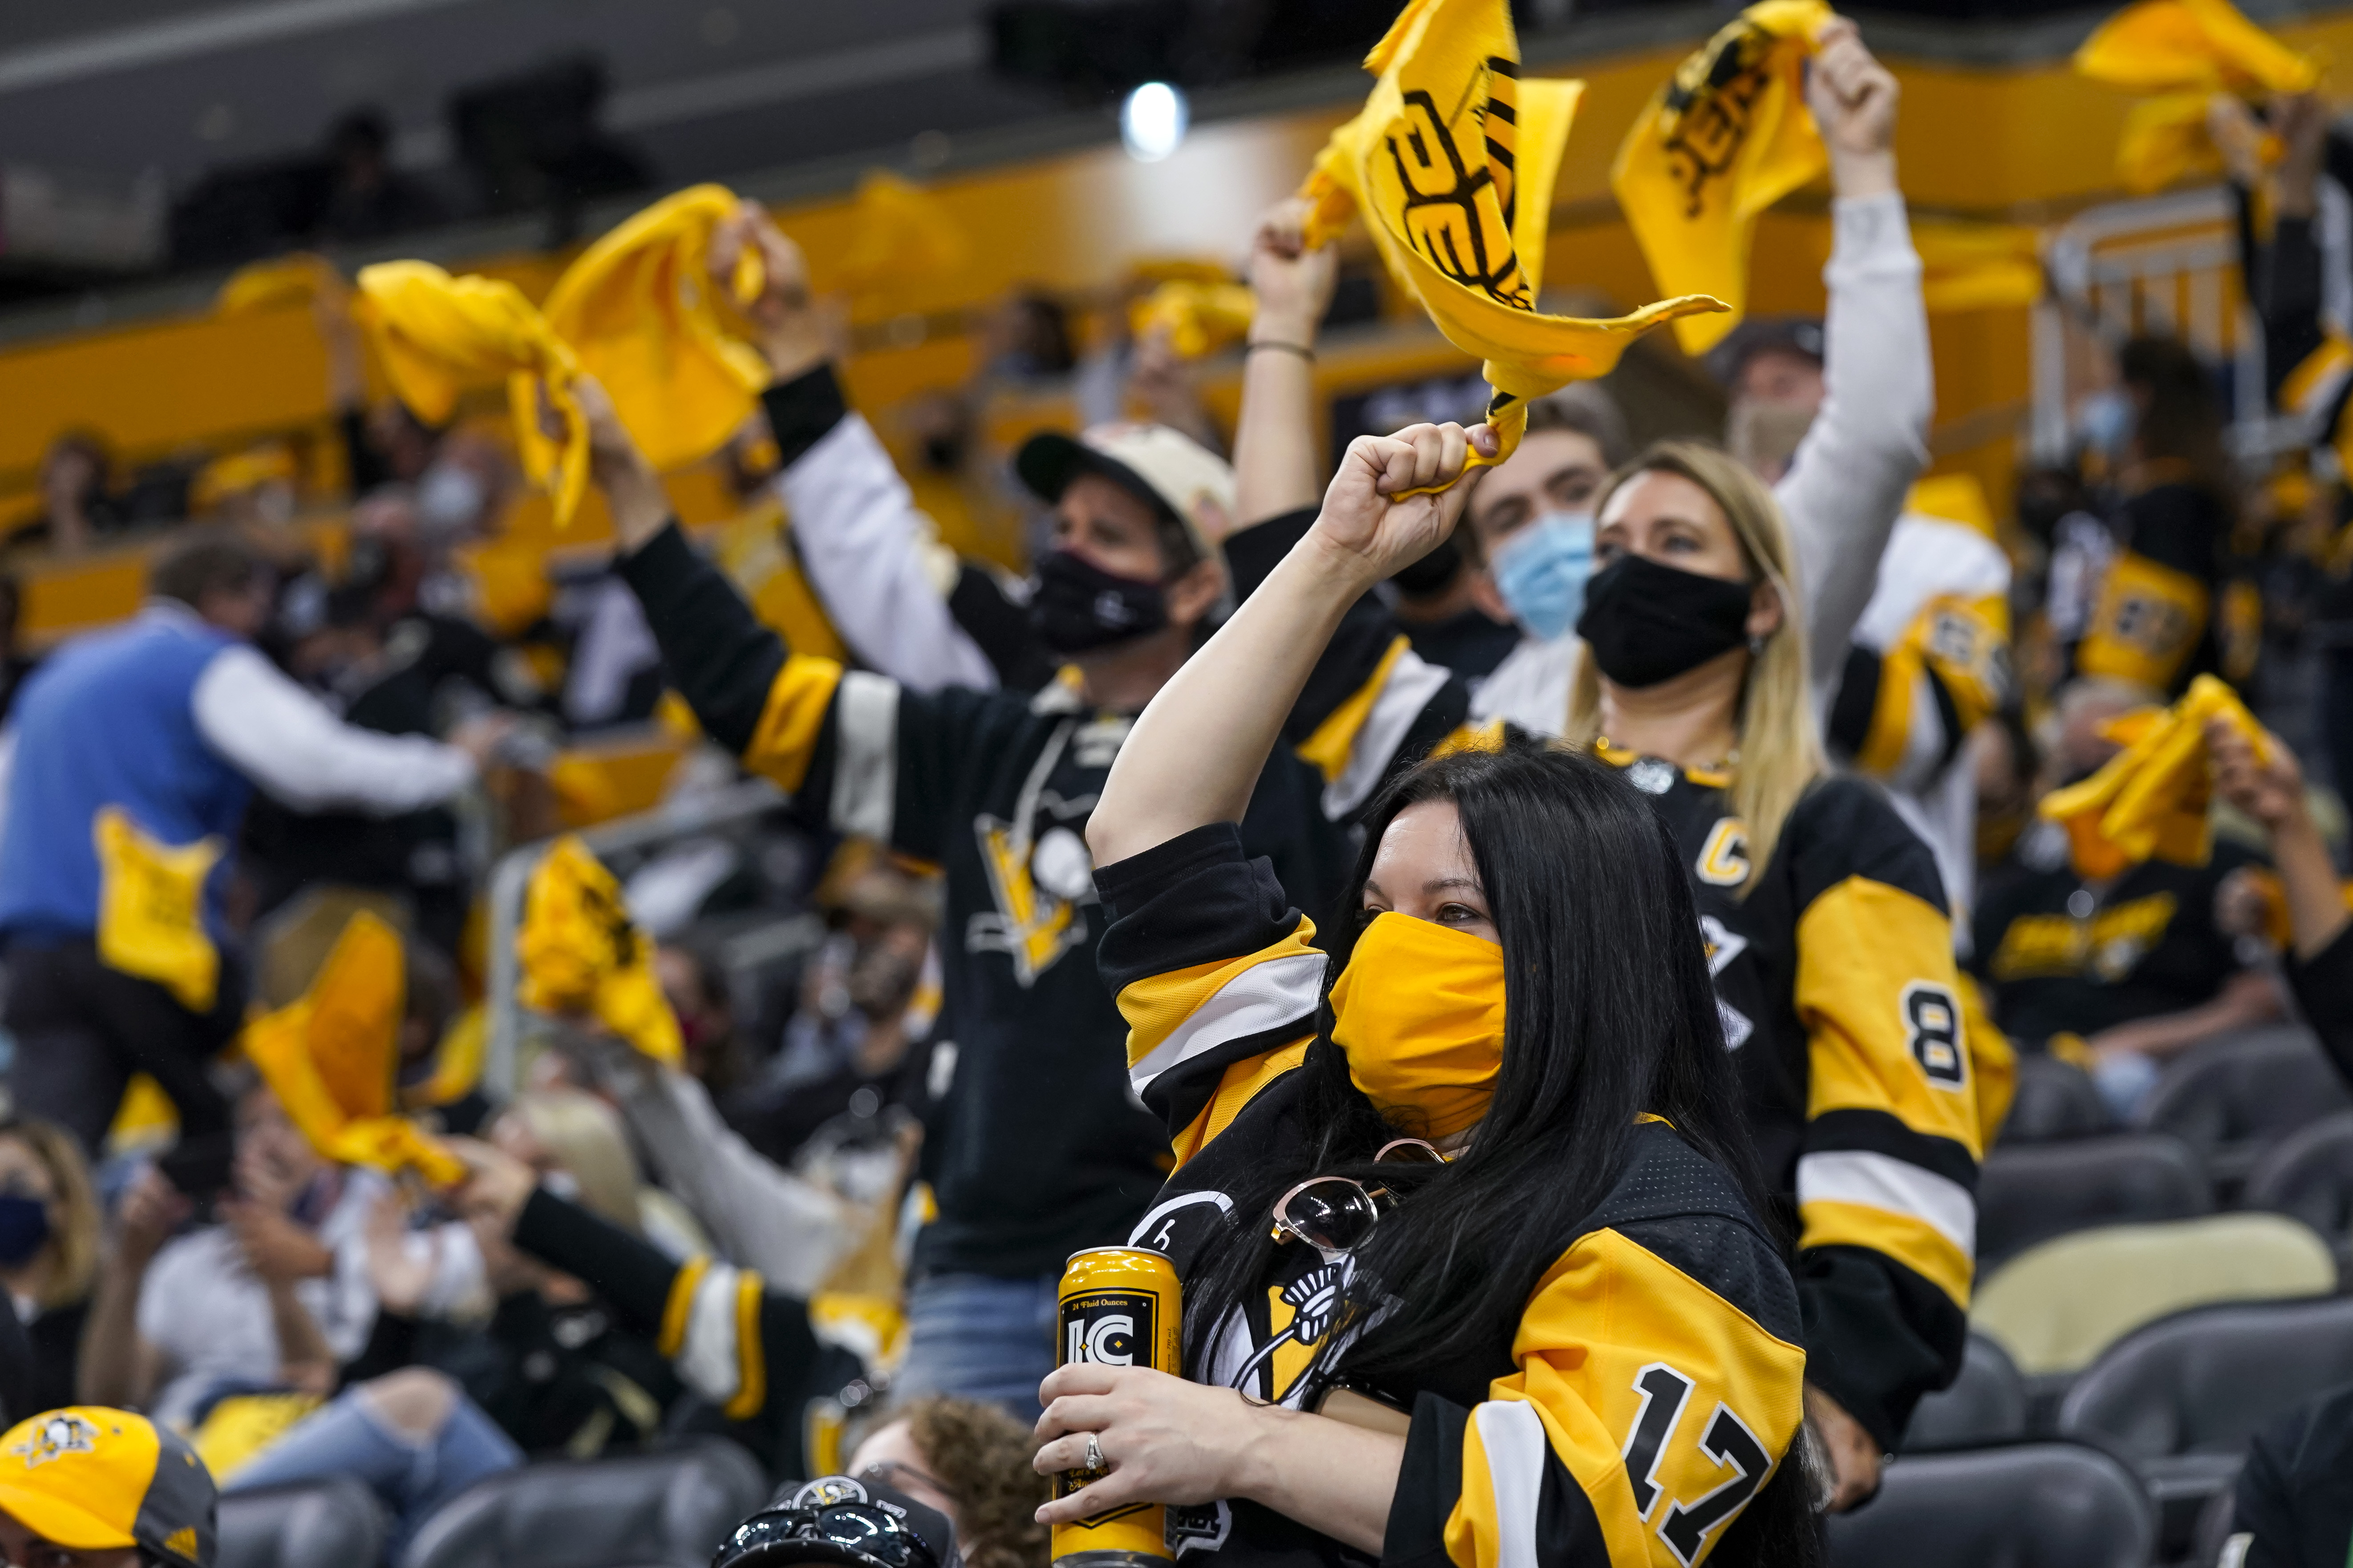 NHL: MAY 18 Stanley Cup Playoffs First Round - Islanders at Penguins